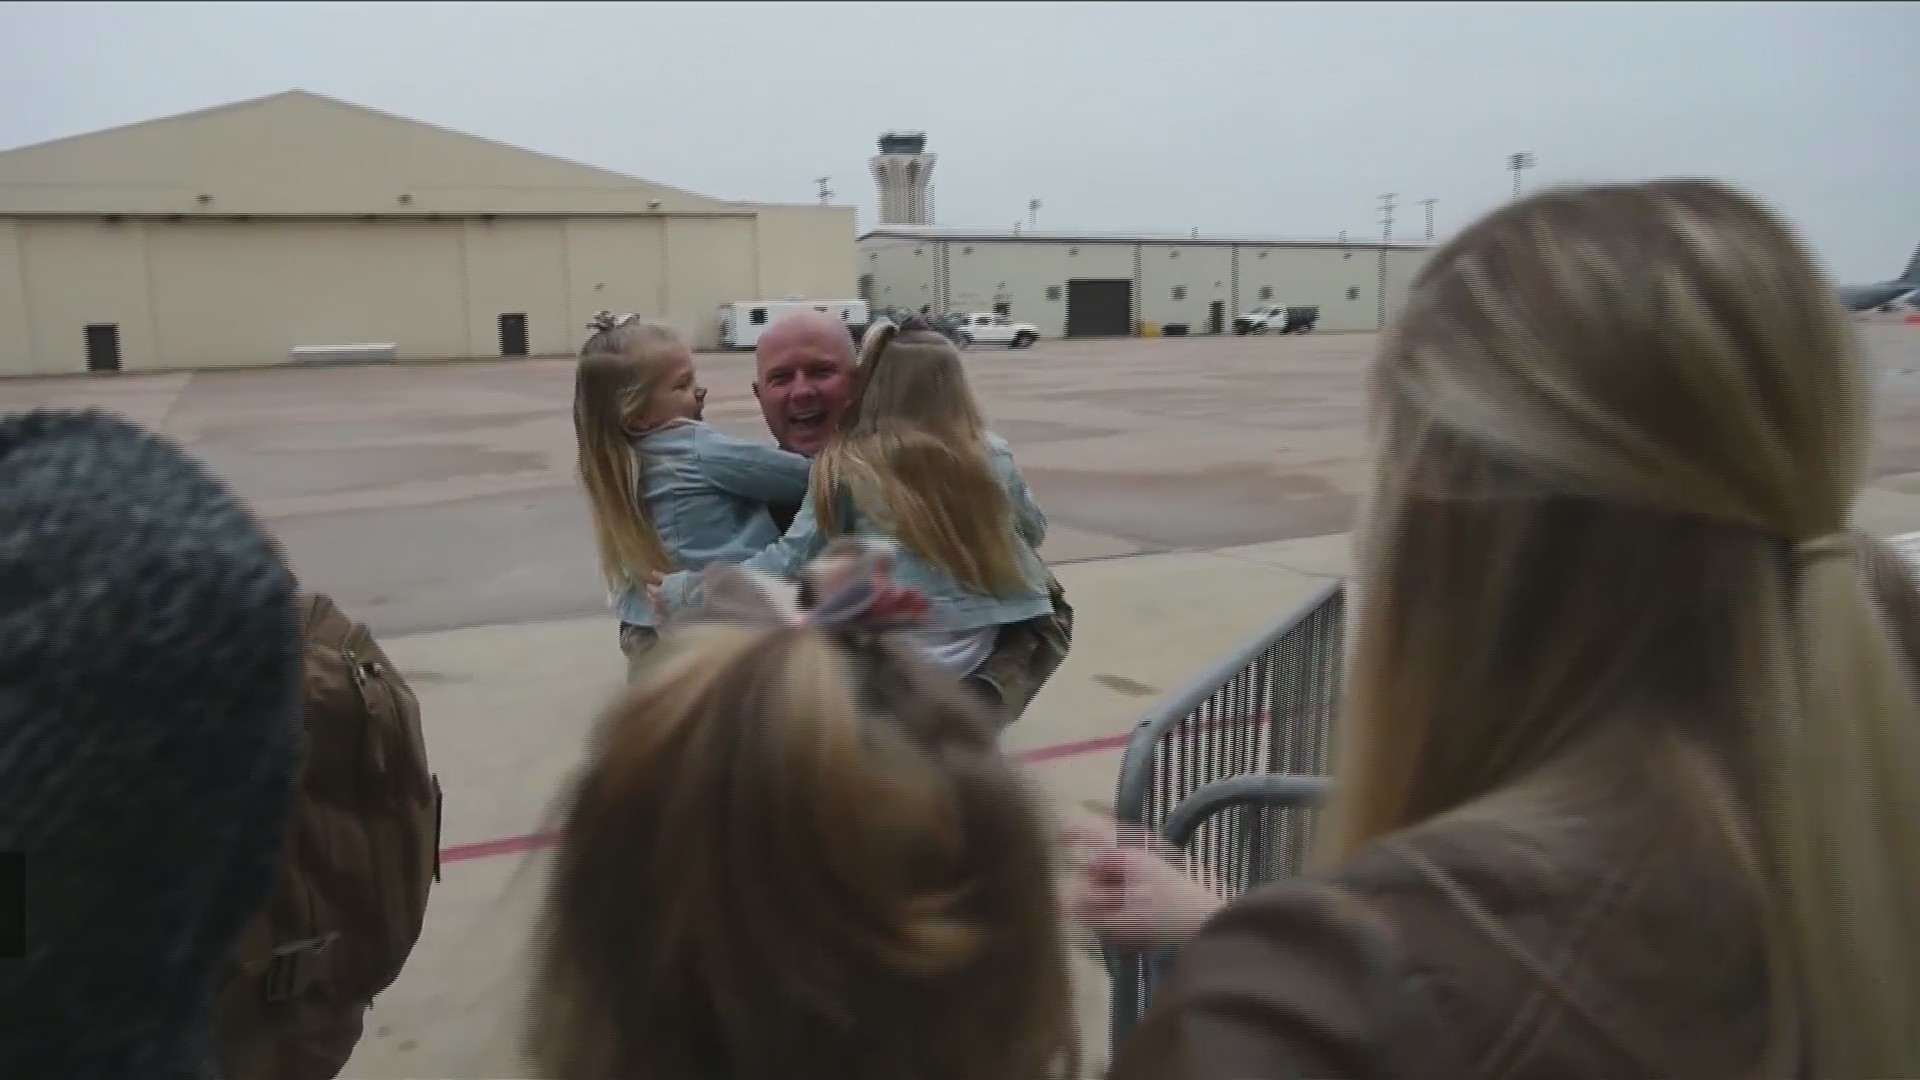 More than 300 airmen return home after 6-month deployment in Qatar